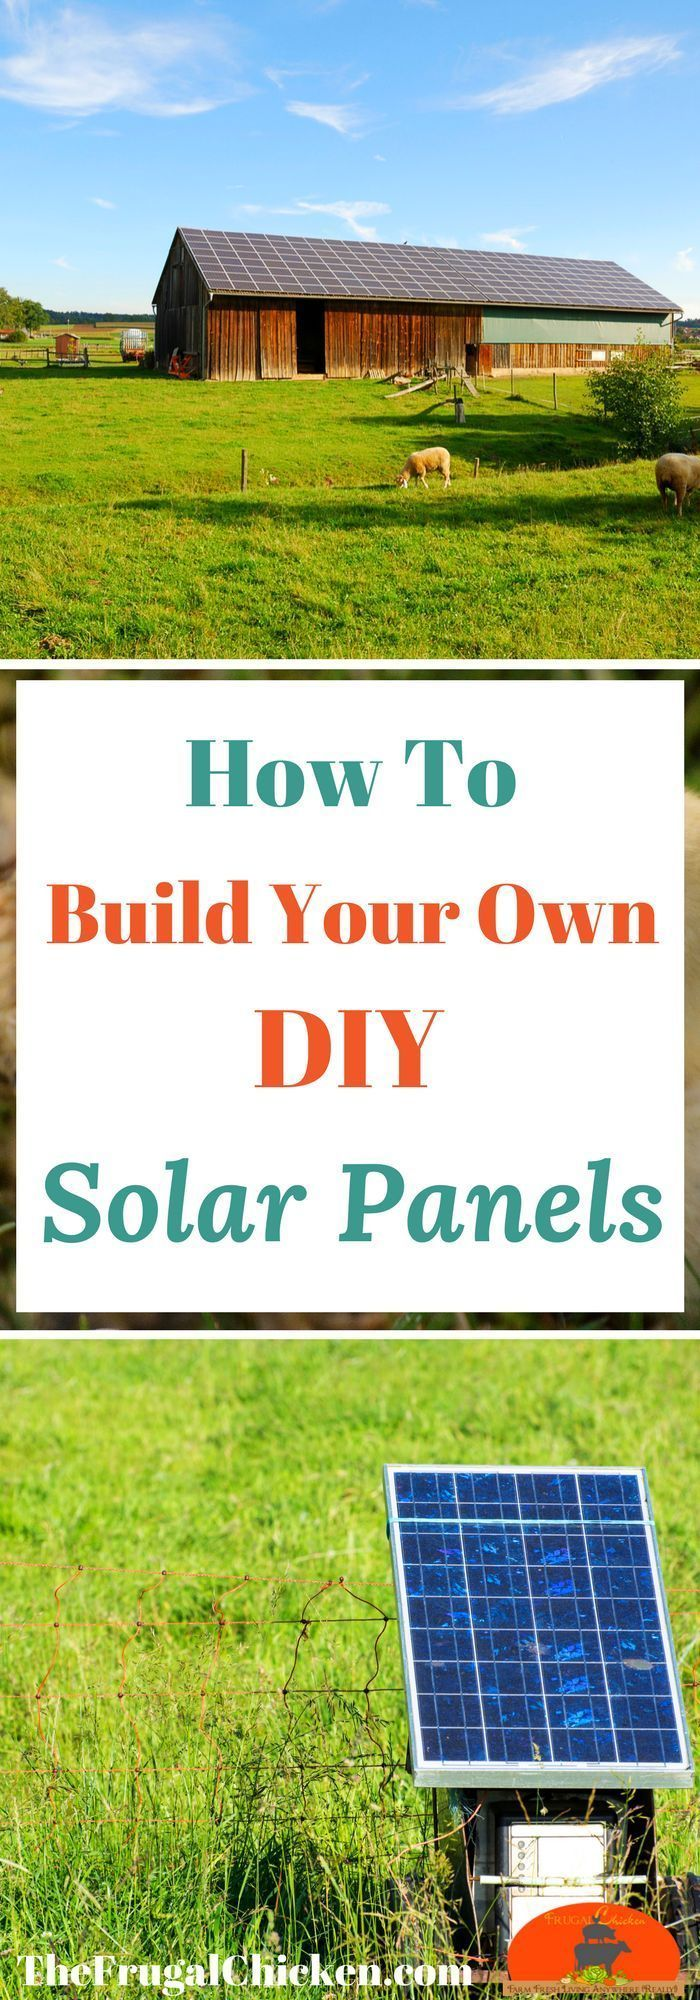 Building your own solar panels is easy if you have guidance! Learn how you can make DIY solar panels in your backyard!